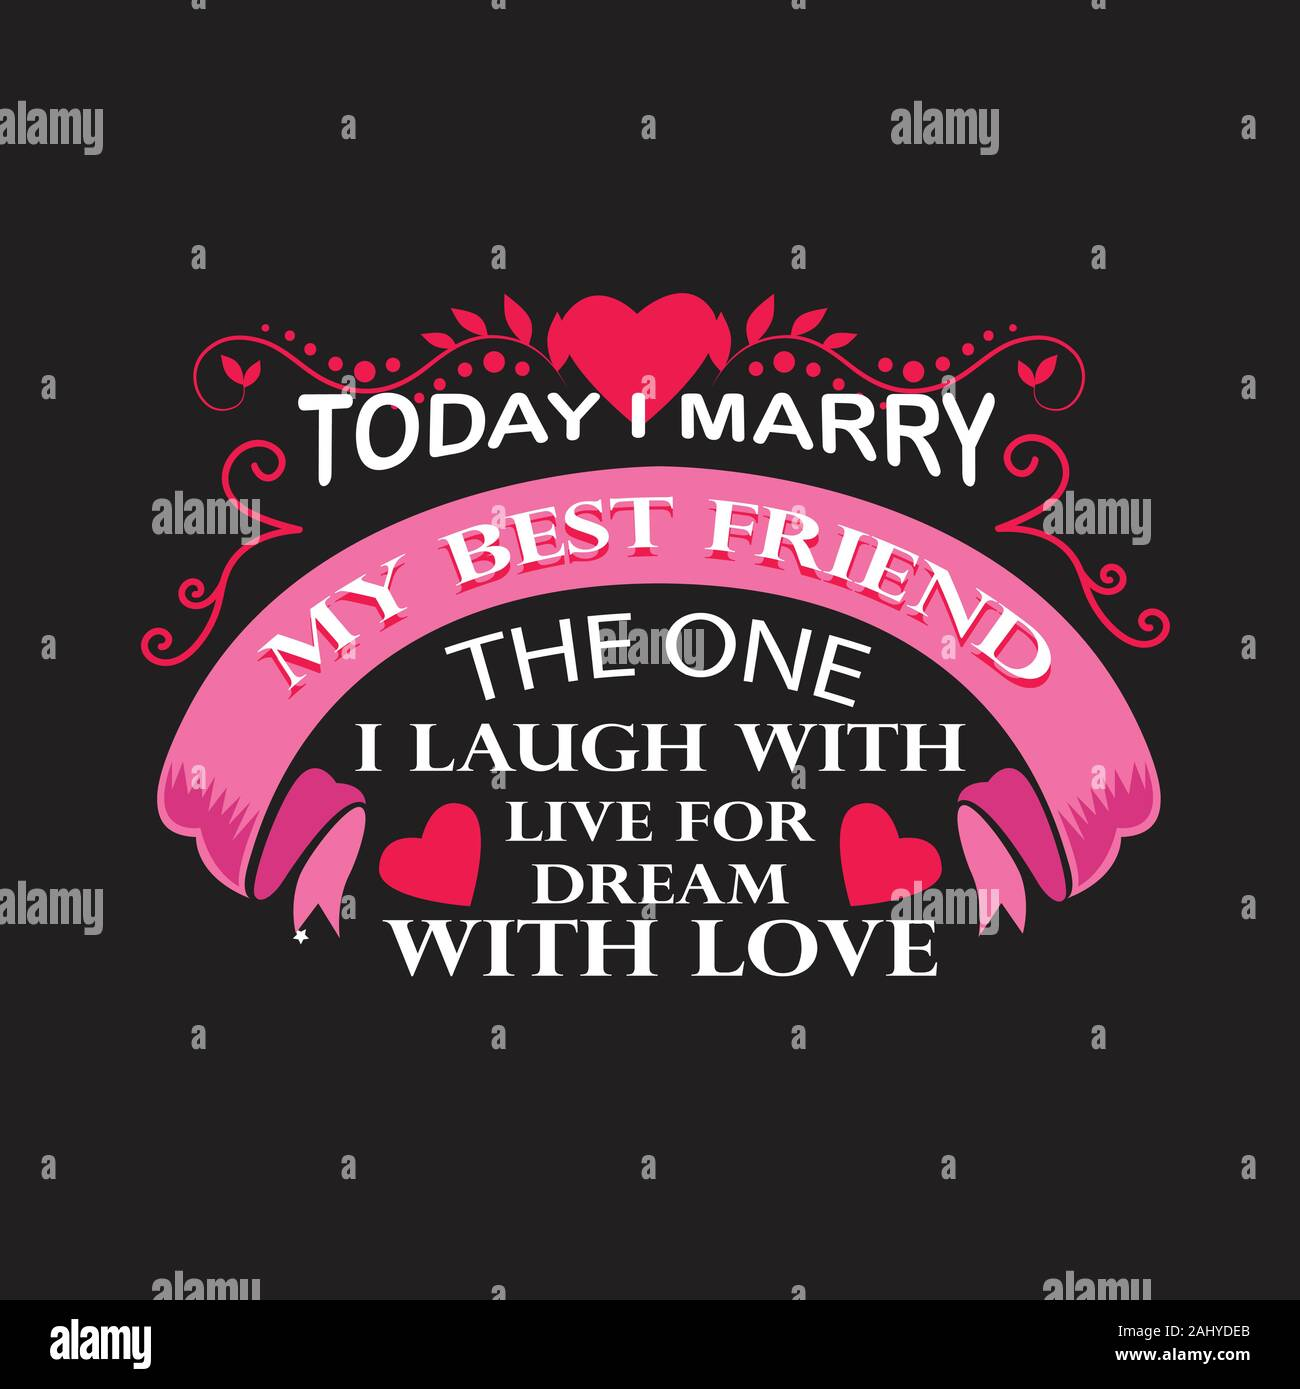 wedding quotes and slogan good for t shirt today i marry my best